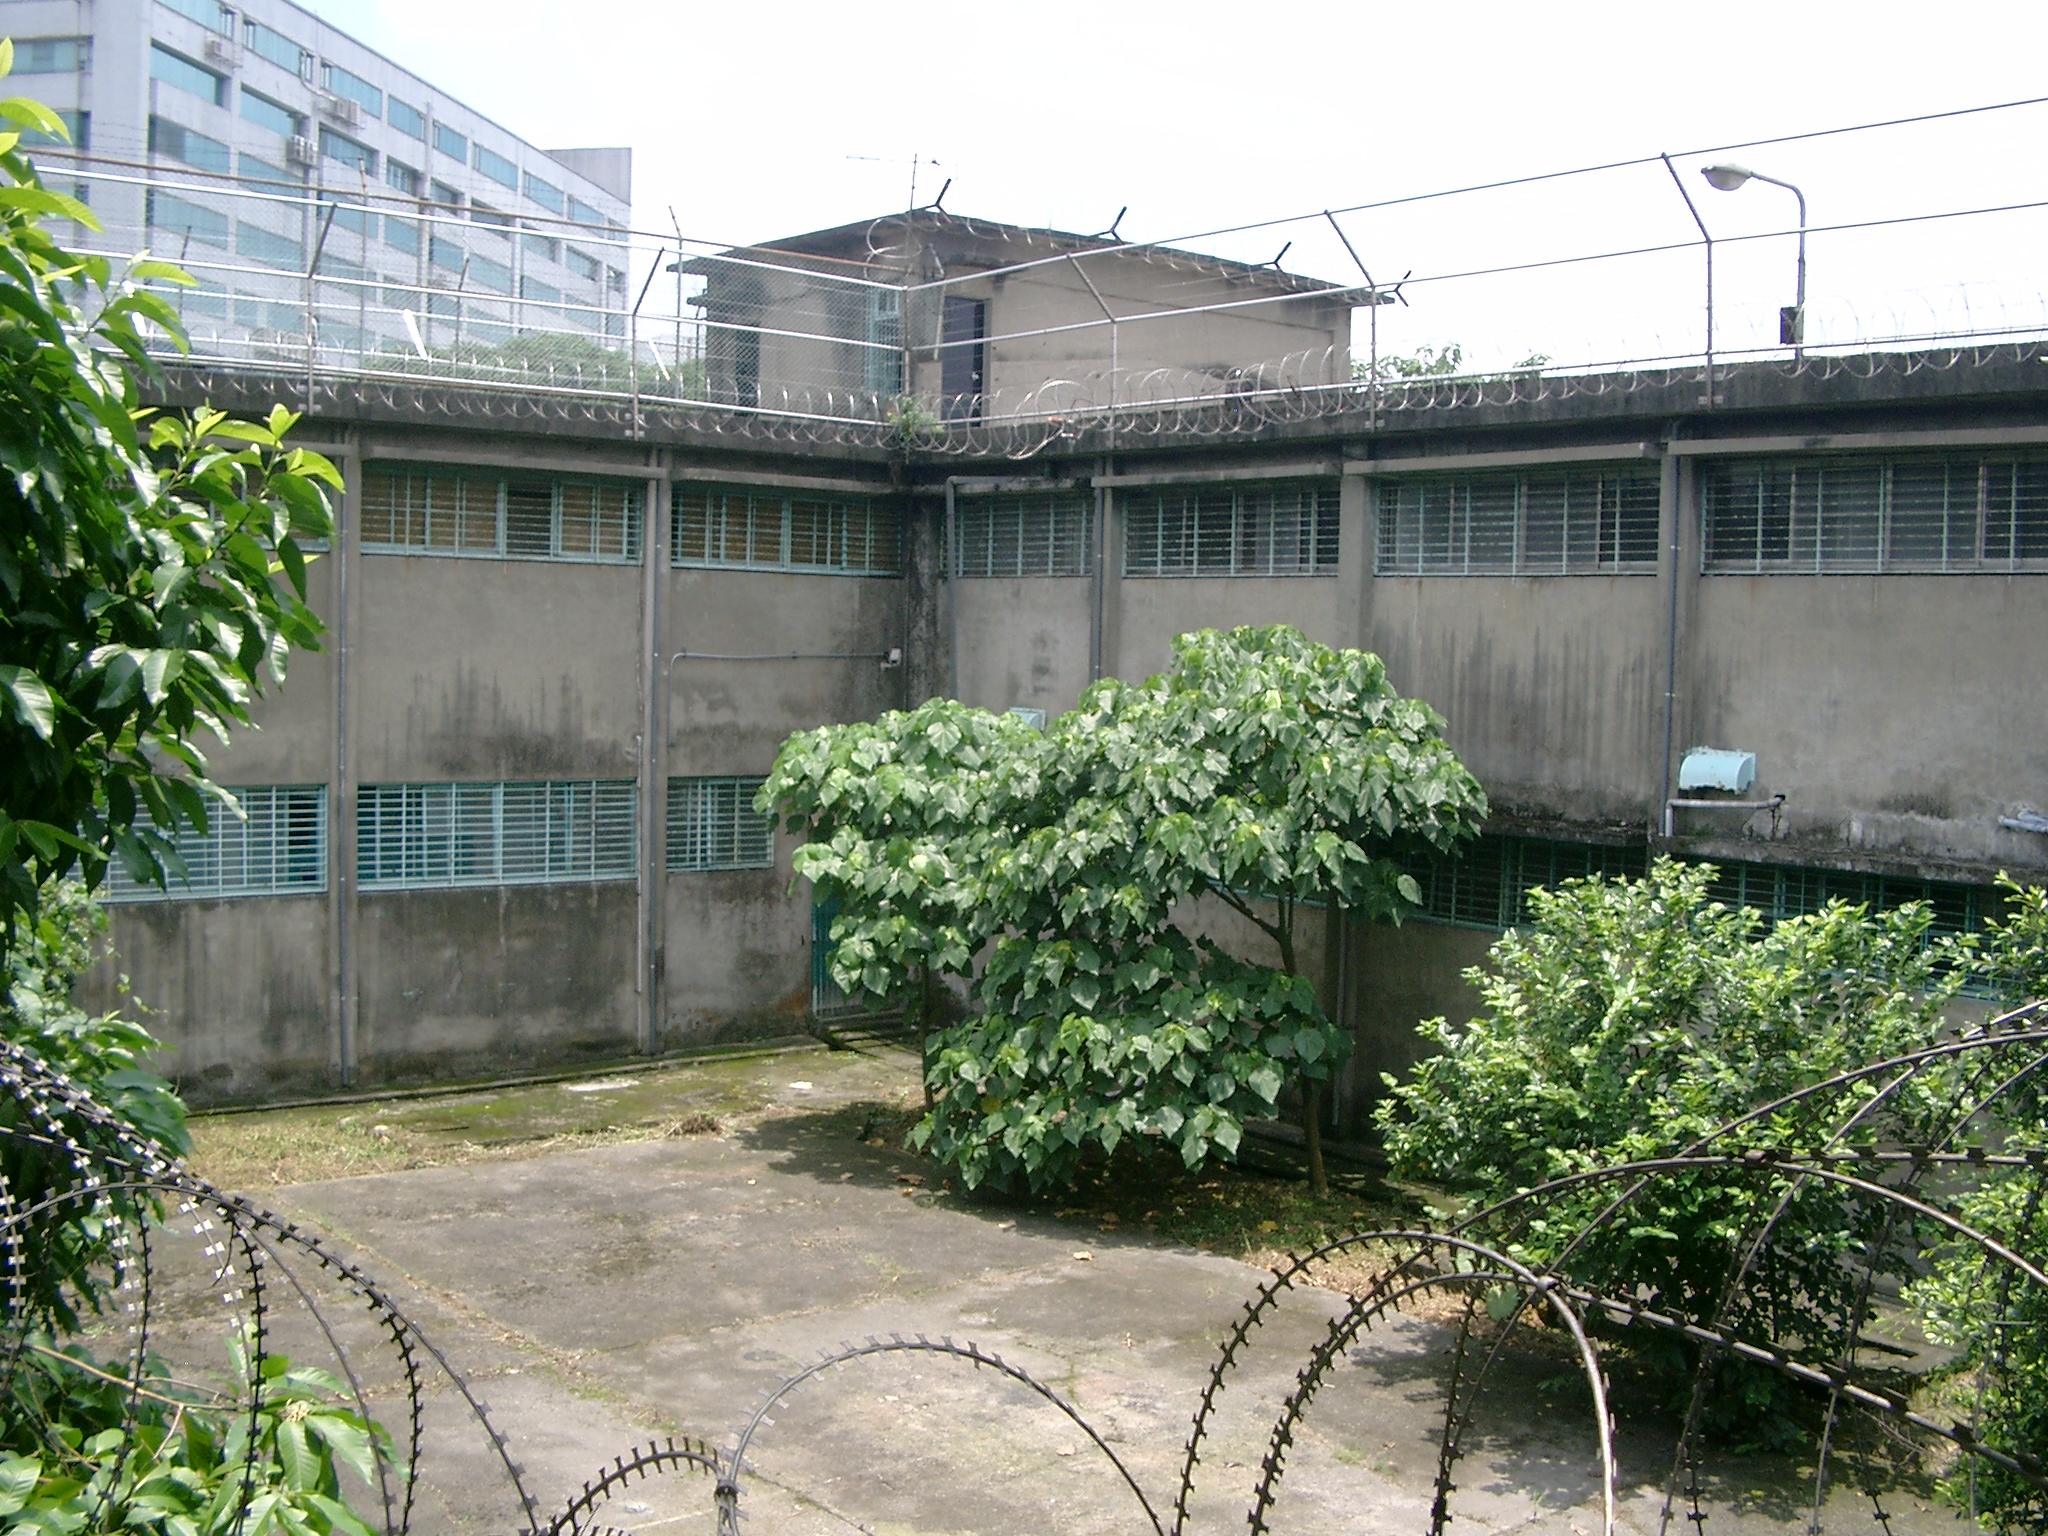 Jingmei Human Rights Memorial Courtyard